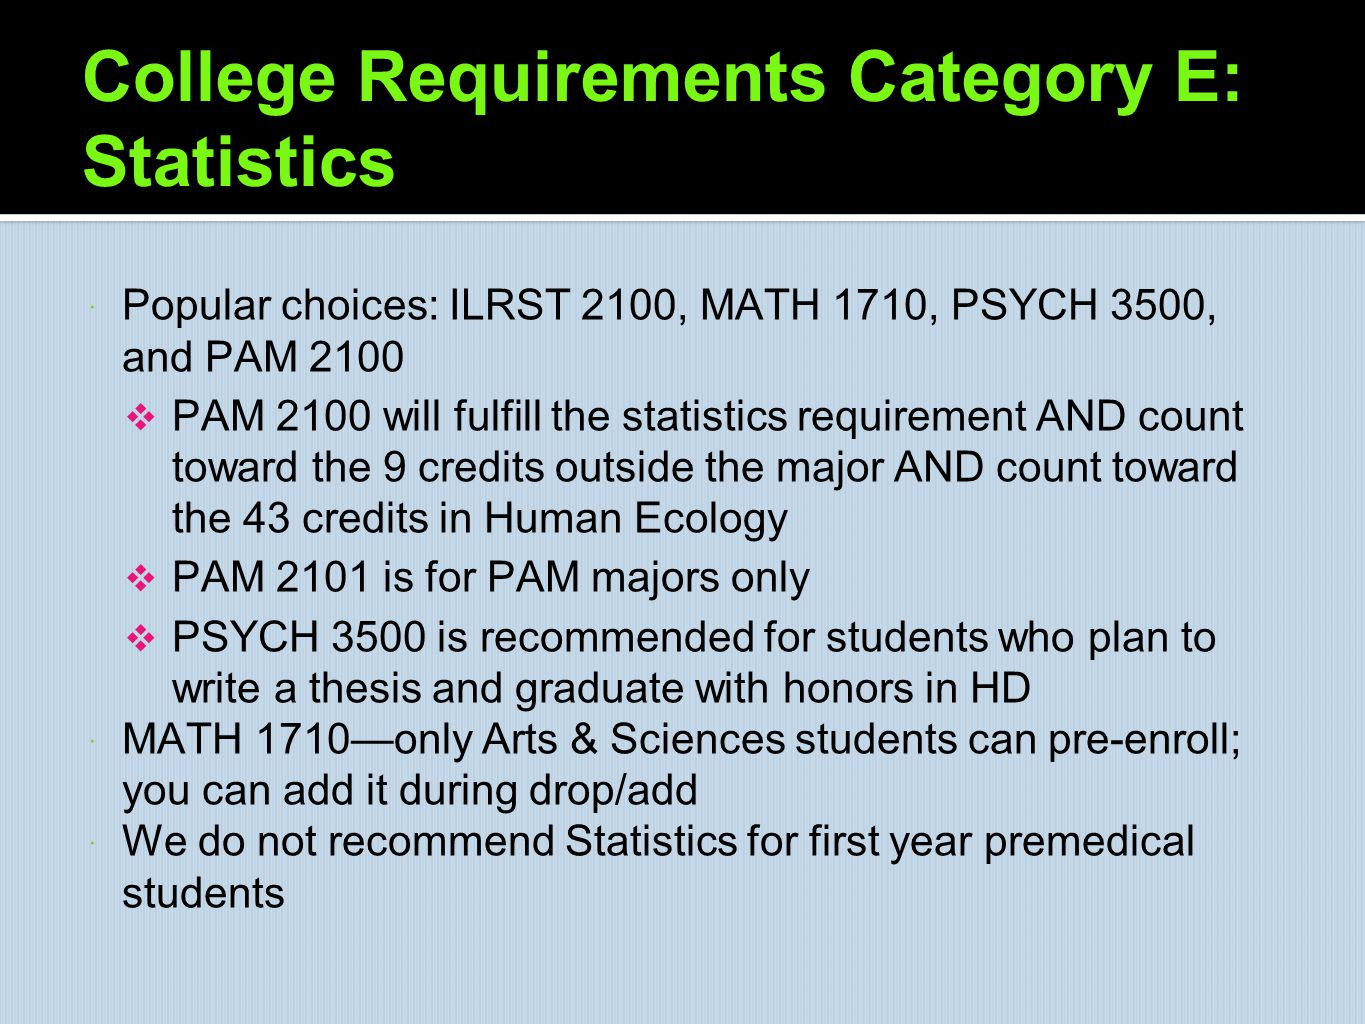 College Requirements Category E: Statistics  Popular choices: ILRST 2100, MATH 1710, PSYCH 3500, and PAM 2100  PAM 2100 will fulfill the statistics